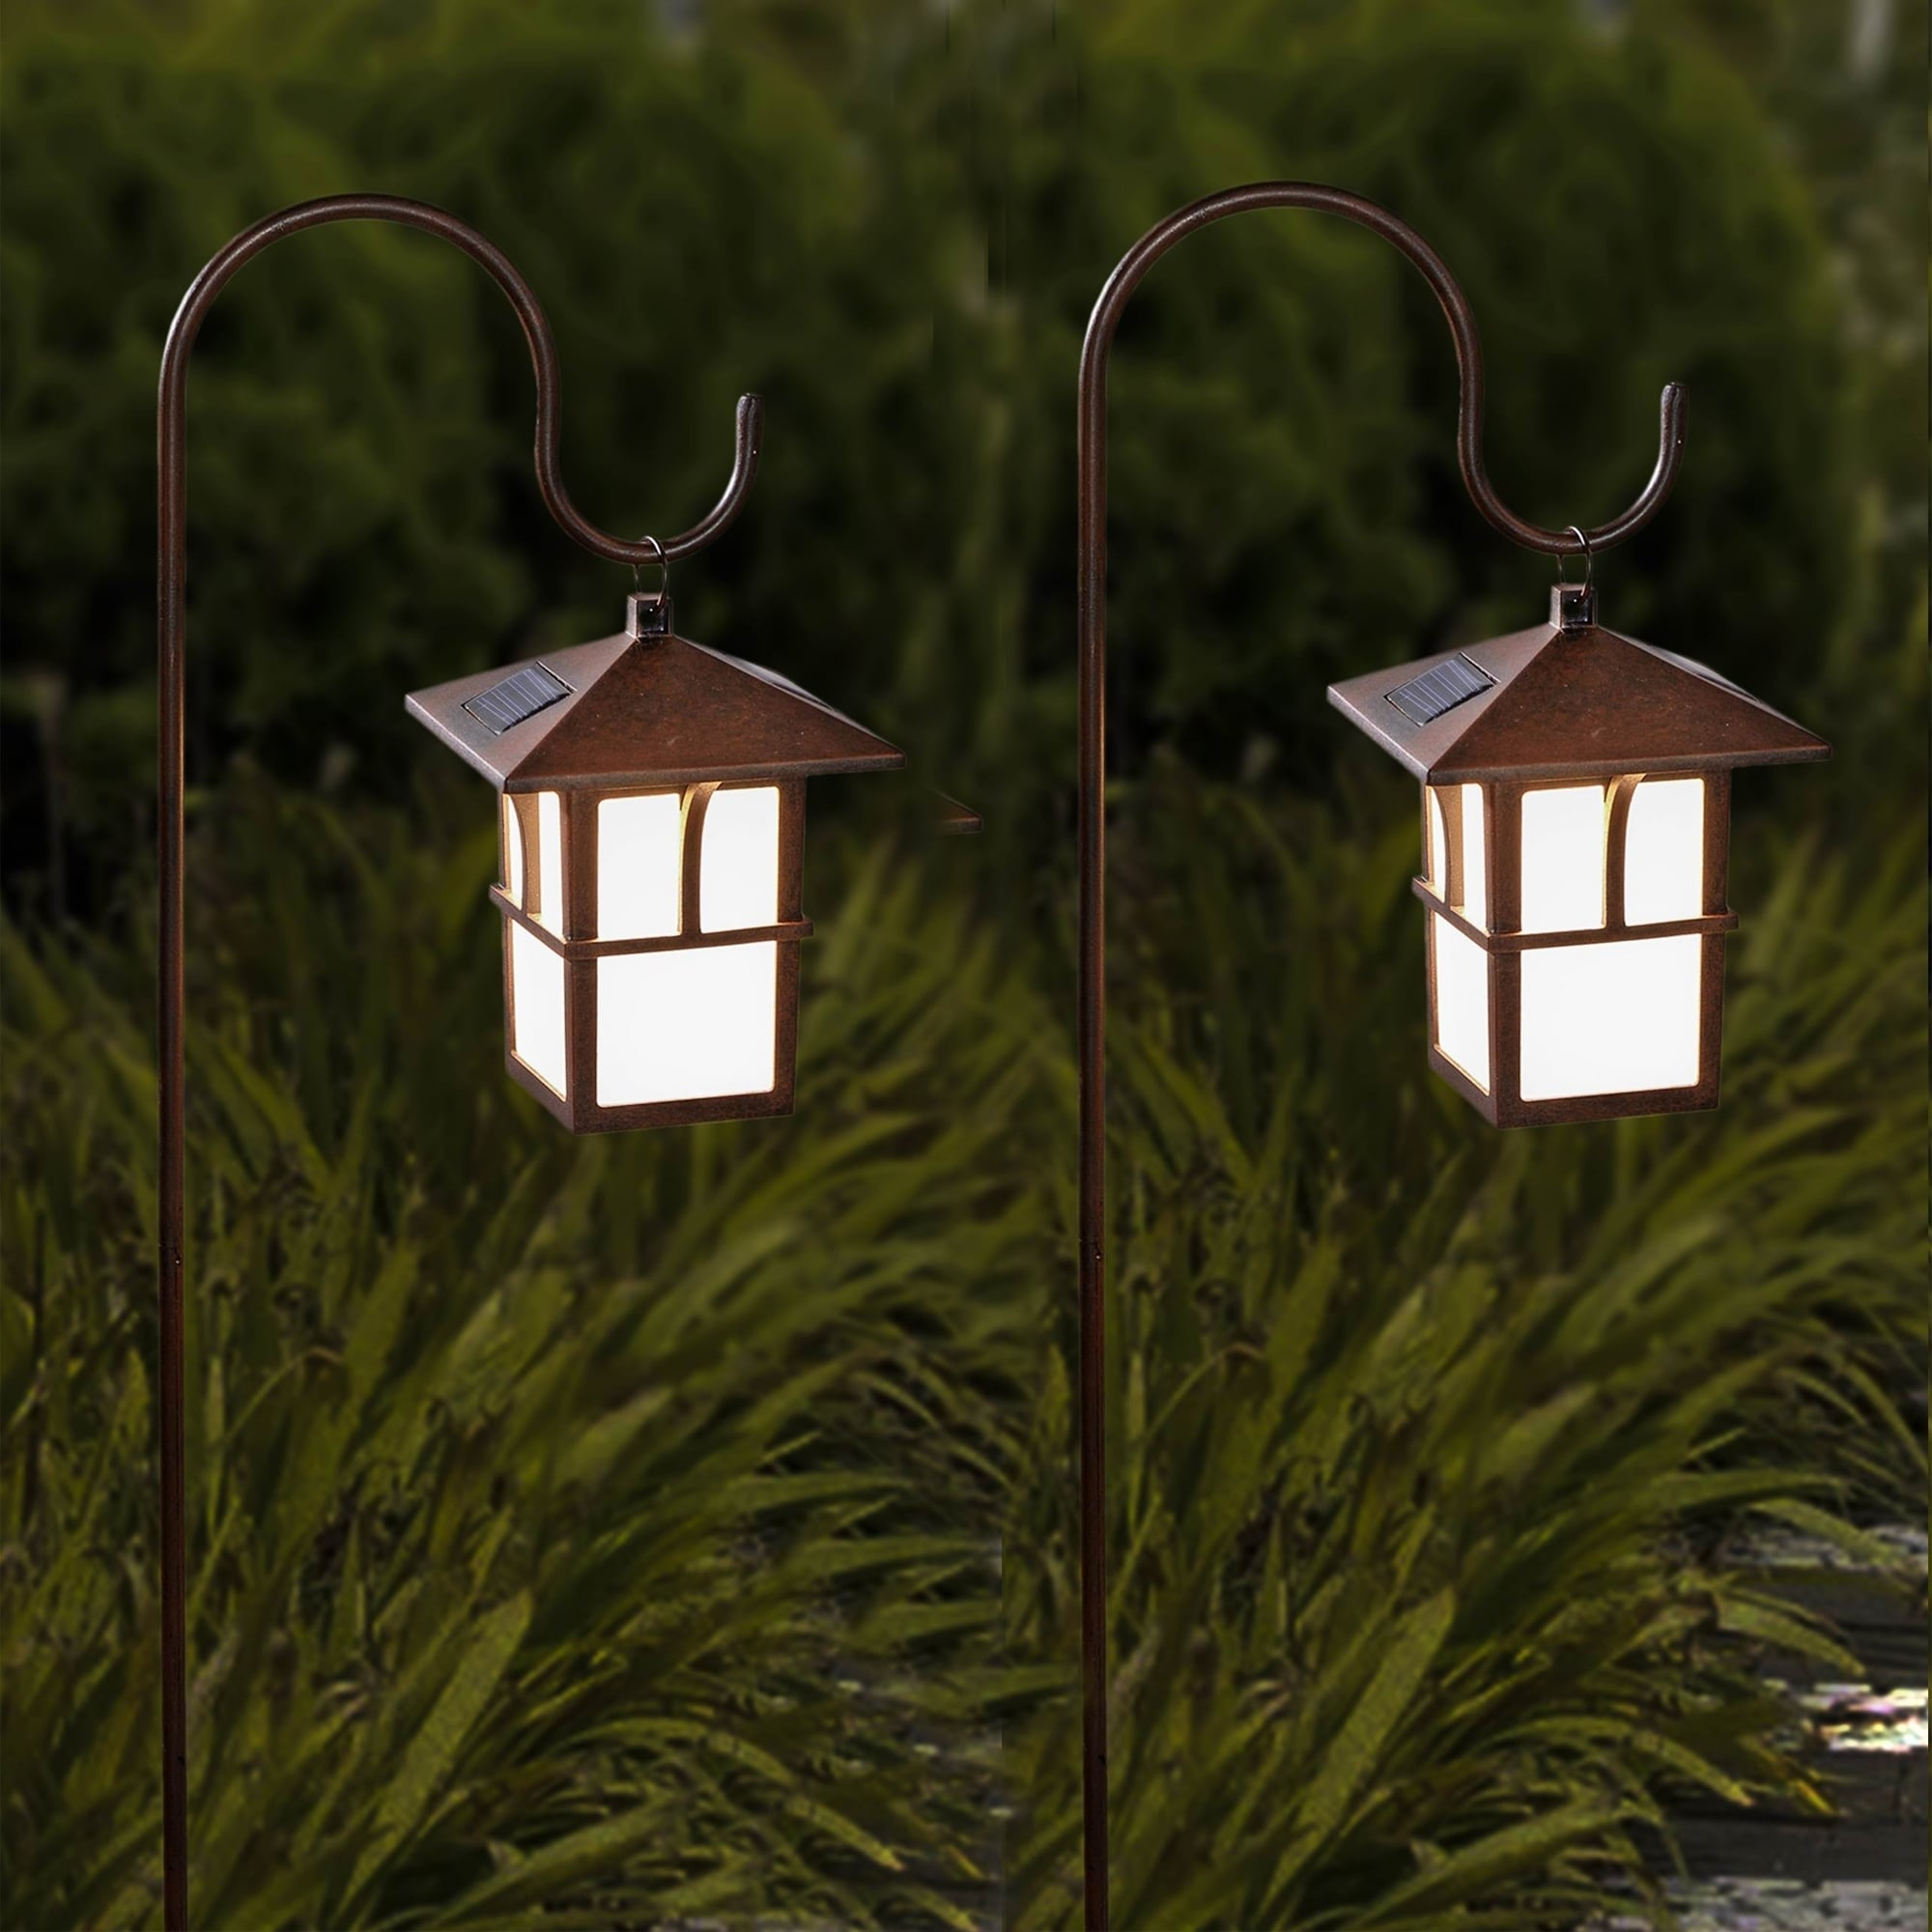 Set of 2 Pagoda Hanging Solar Lanterns with Shepherd's Ho...